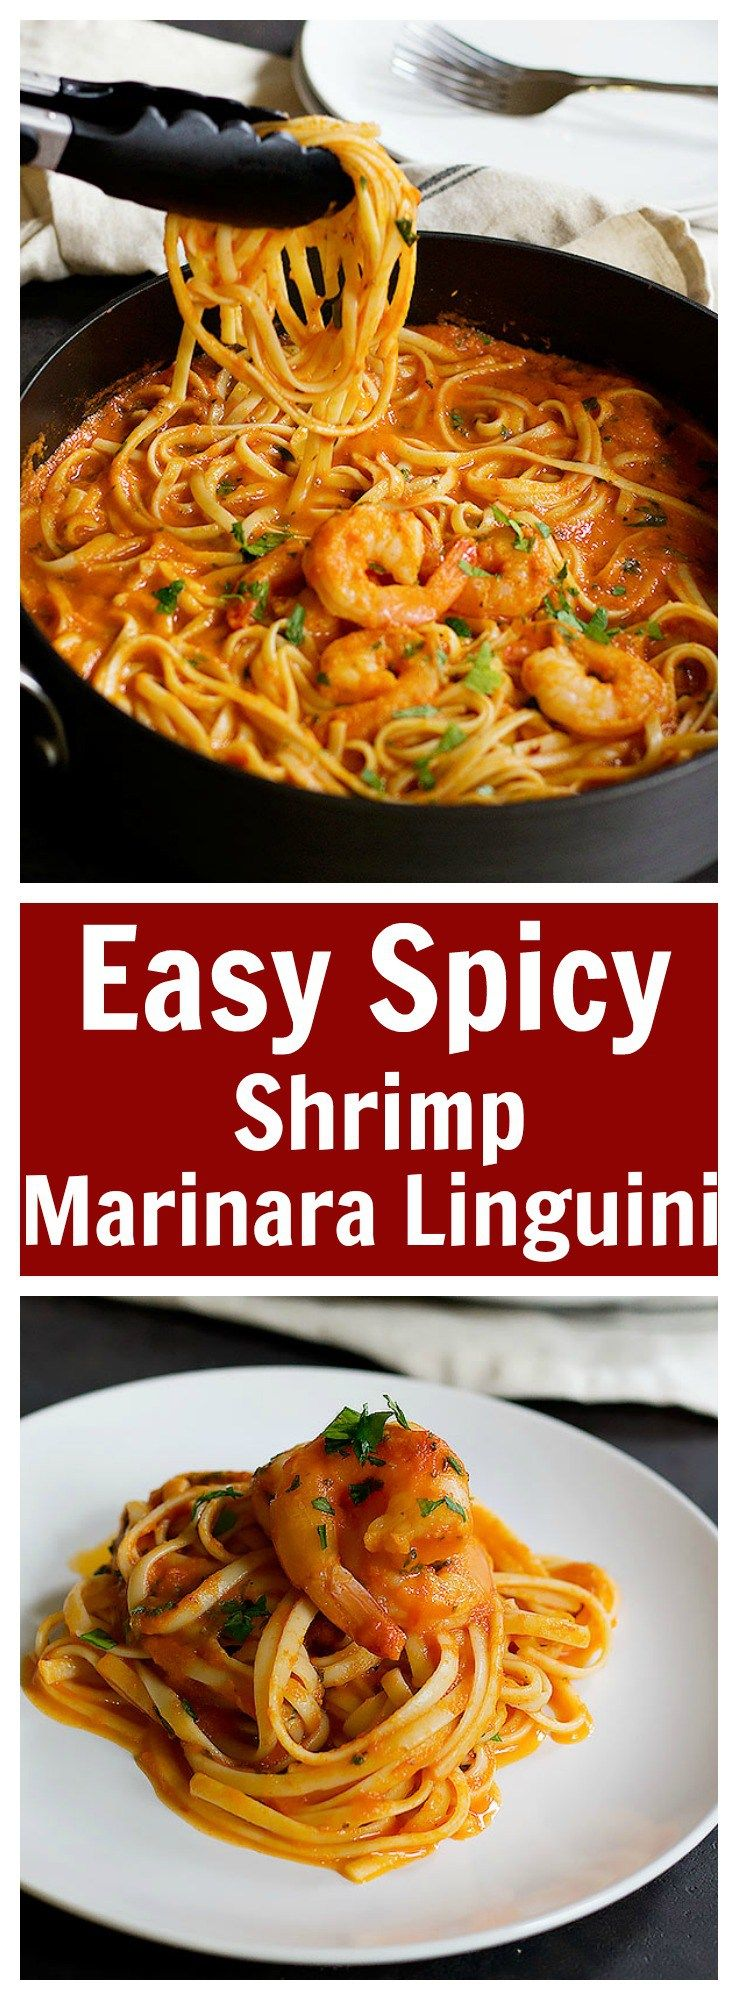 This Easy Spicy Shrimp Marinara Linguine Will Be On Your Table In Less Than 45 Minutes And It Tastes Amazing Wit Spicy Recipes Marinara Recipe Seafood Recipes